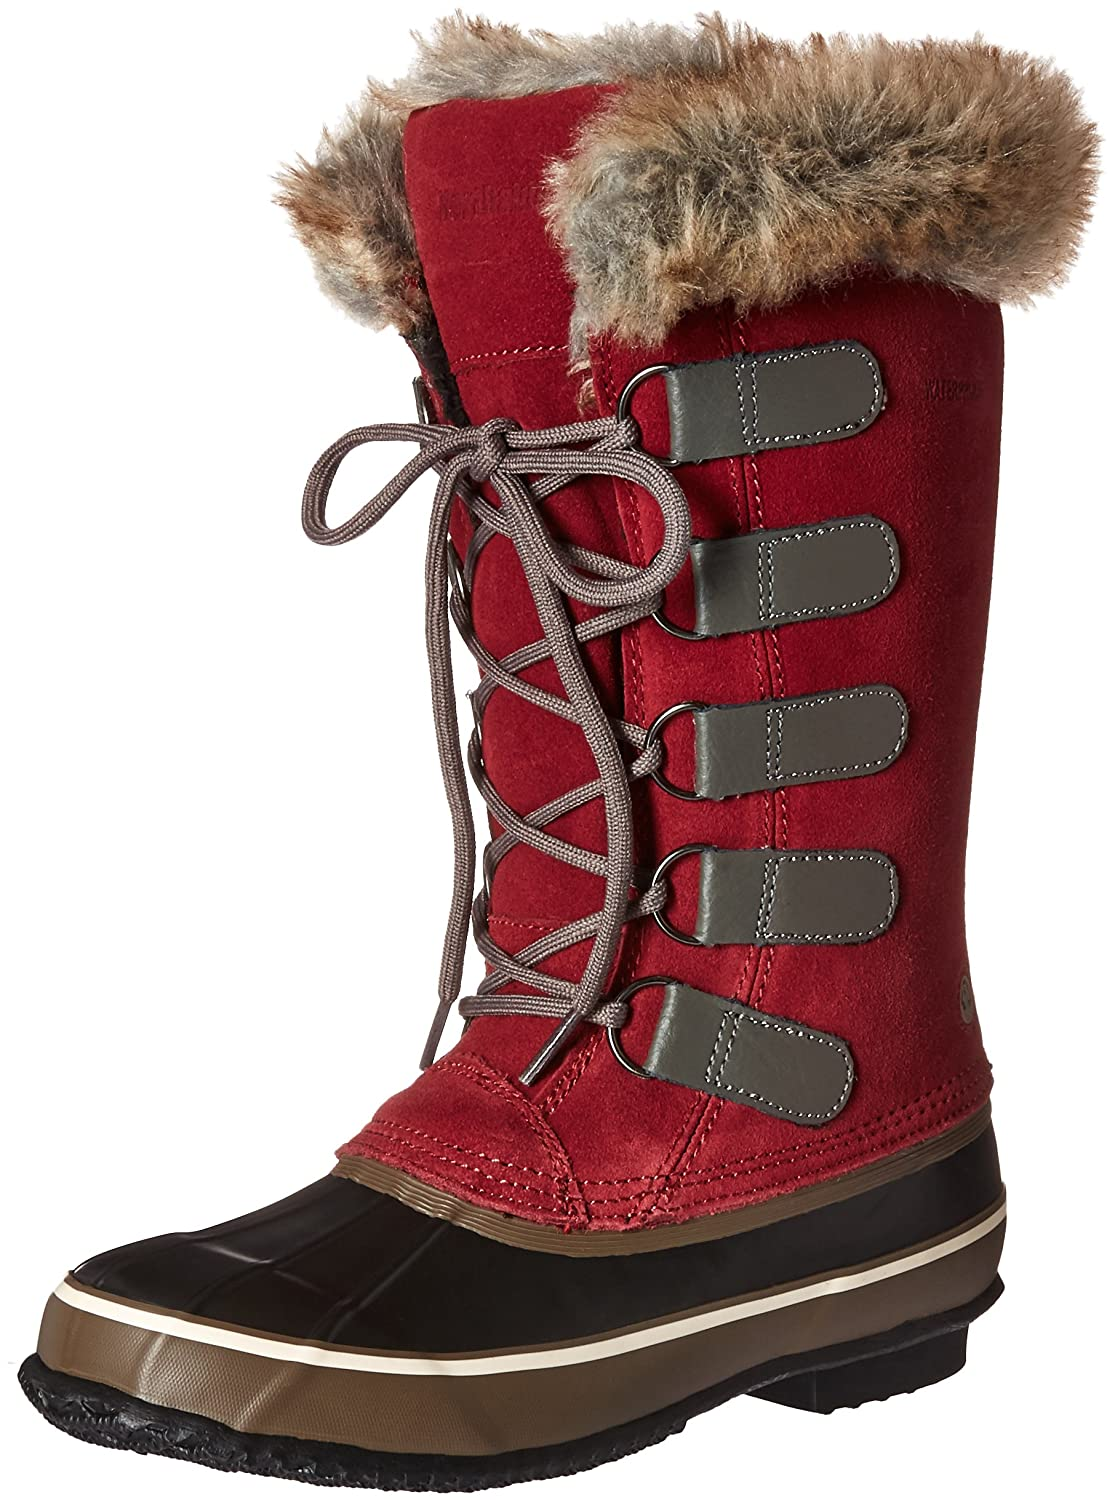 Northside Women's Kathmandu Waterproof Snow Boot B01BSOS77E 7 B(M) US|Marsala Black